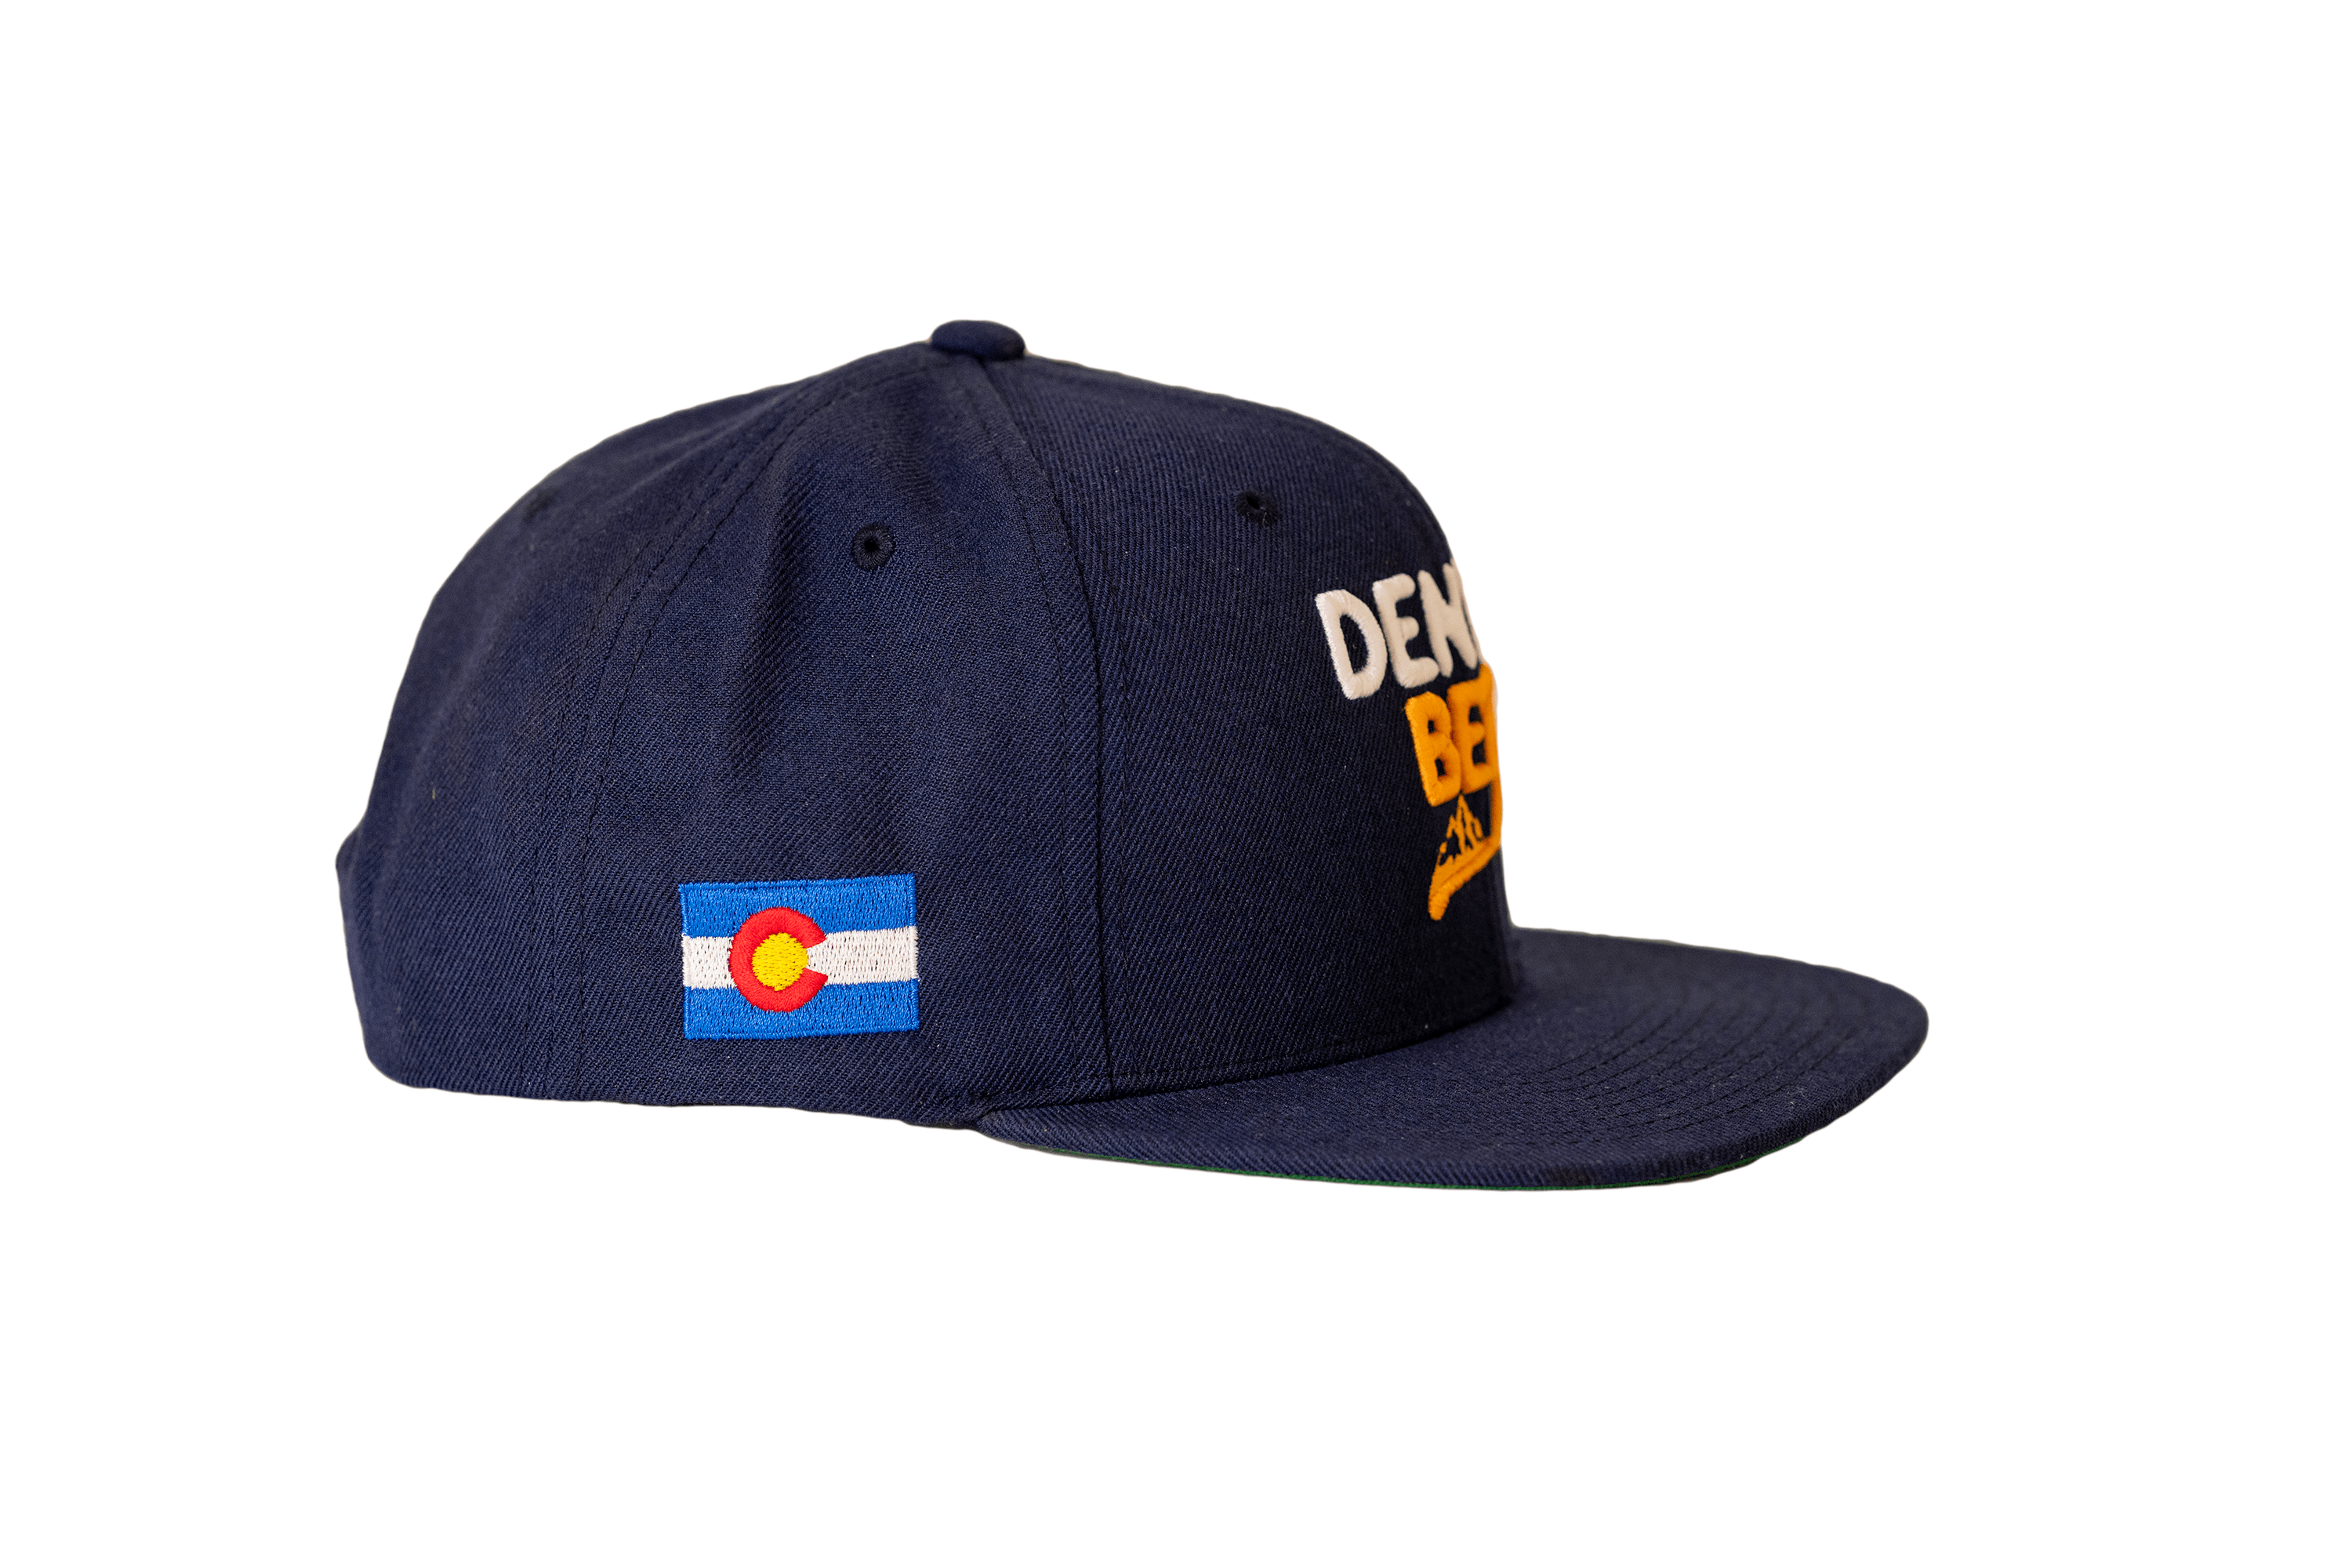 Denver Beer Co Flat Brim Hat, Snap Back, Navy Twill, with Raised Text Embroidery_SWATCH